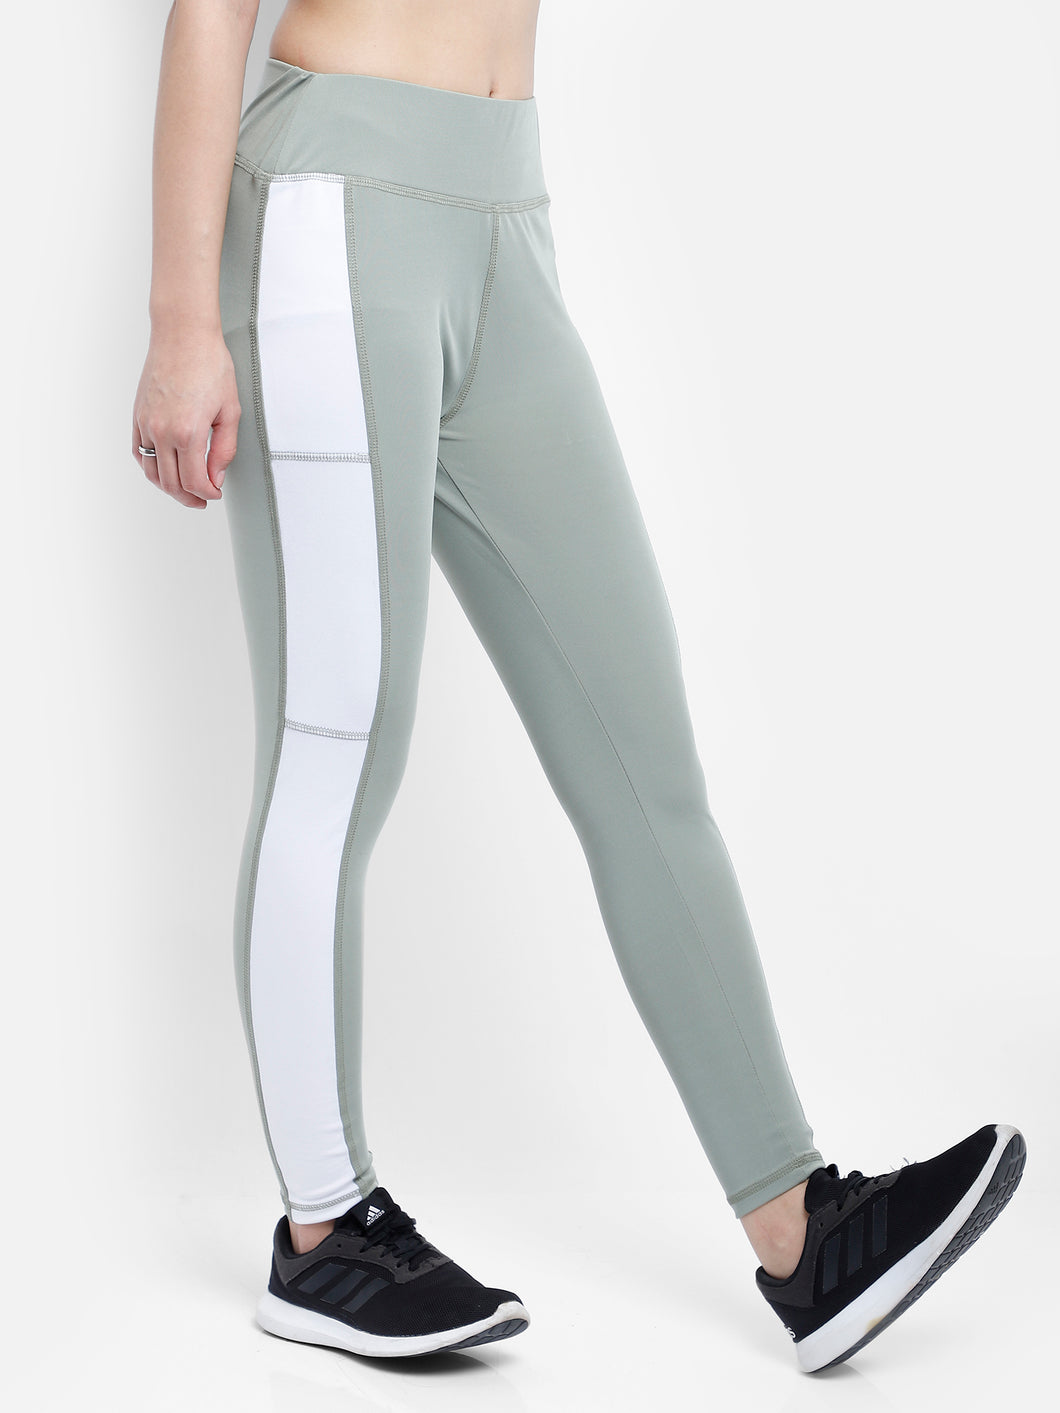 Gym/Yoga High Waist Side White Strap Style Tight  - Light Green & White